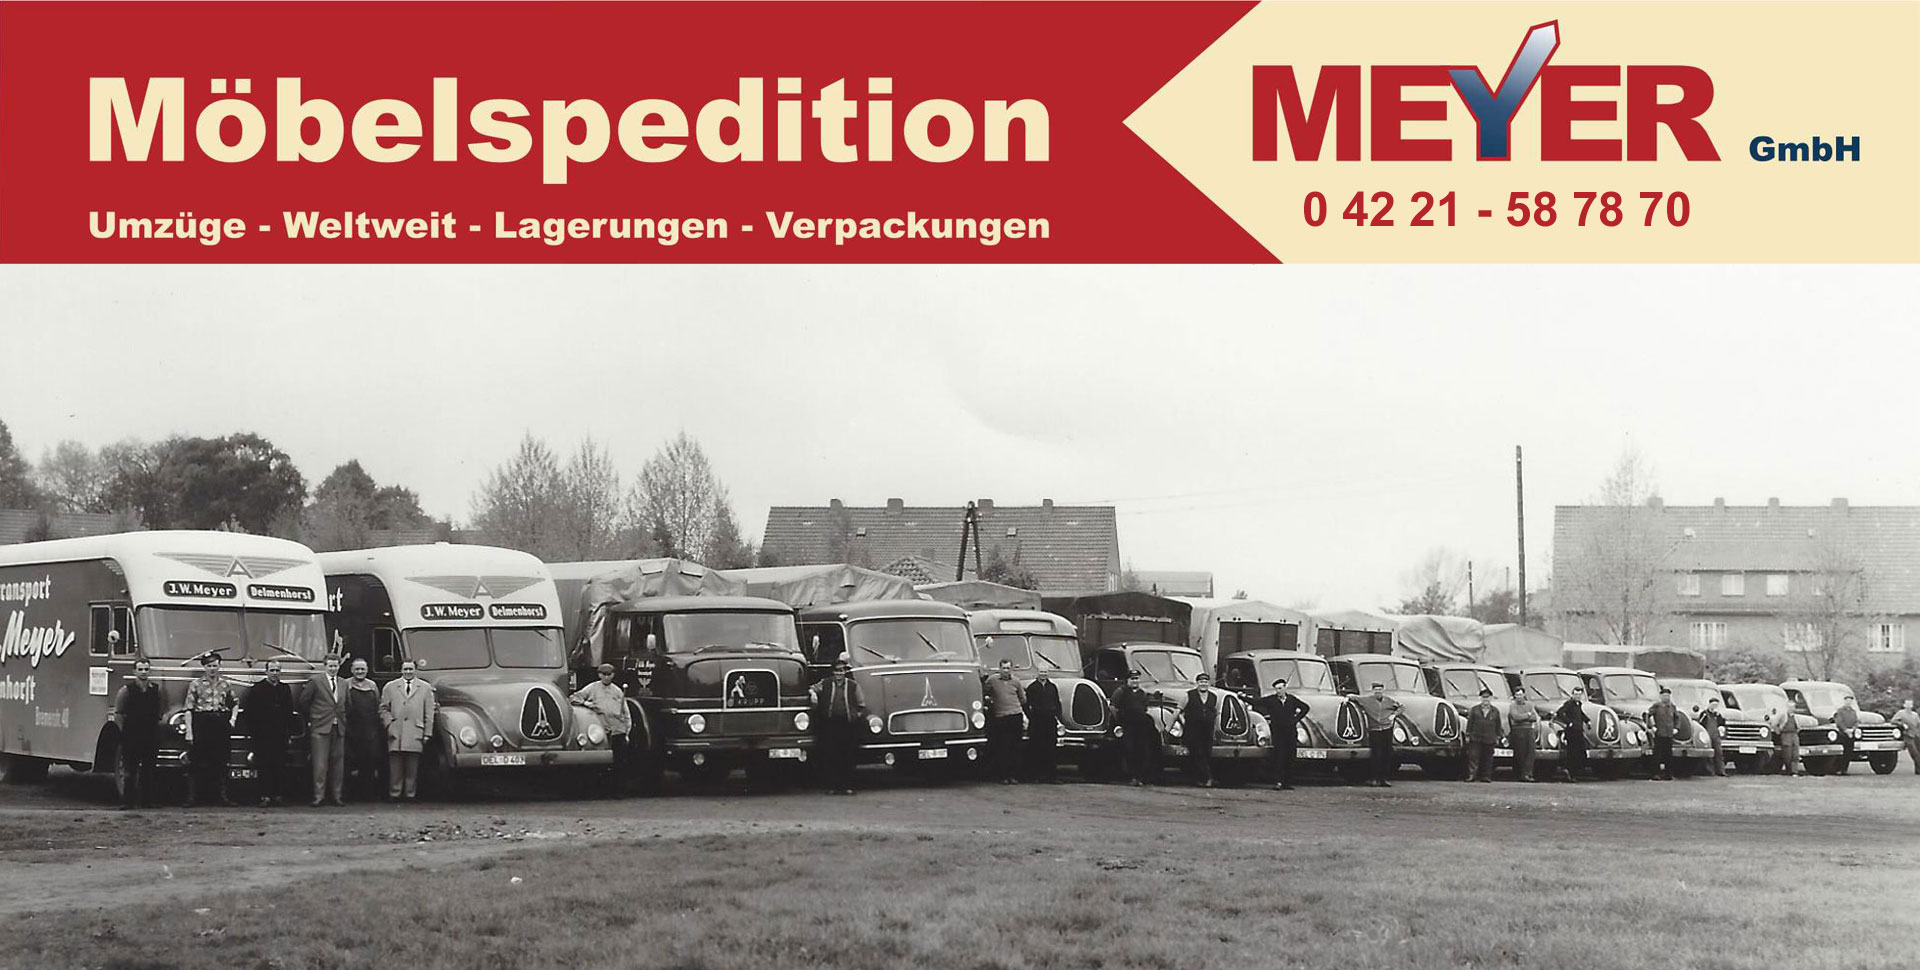 Möbelspedition Meyer Ihre Möbelspedition In Delmenhorst Tel